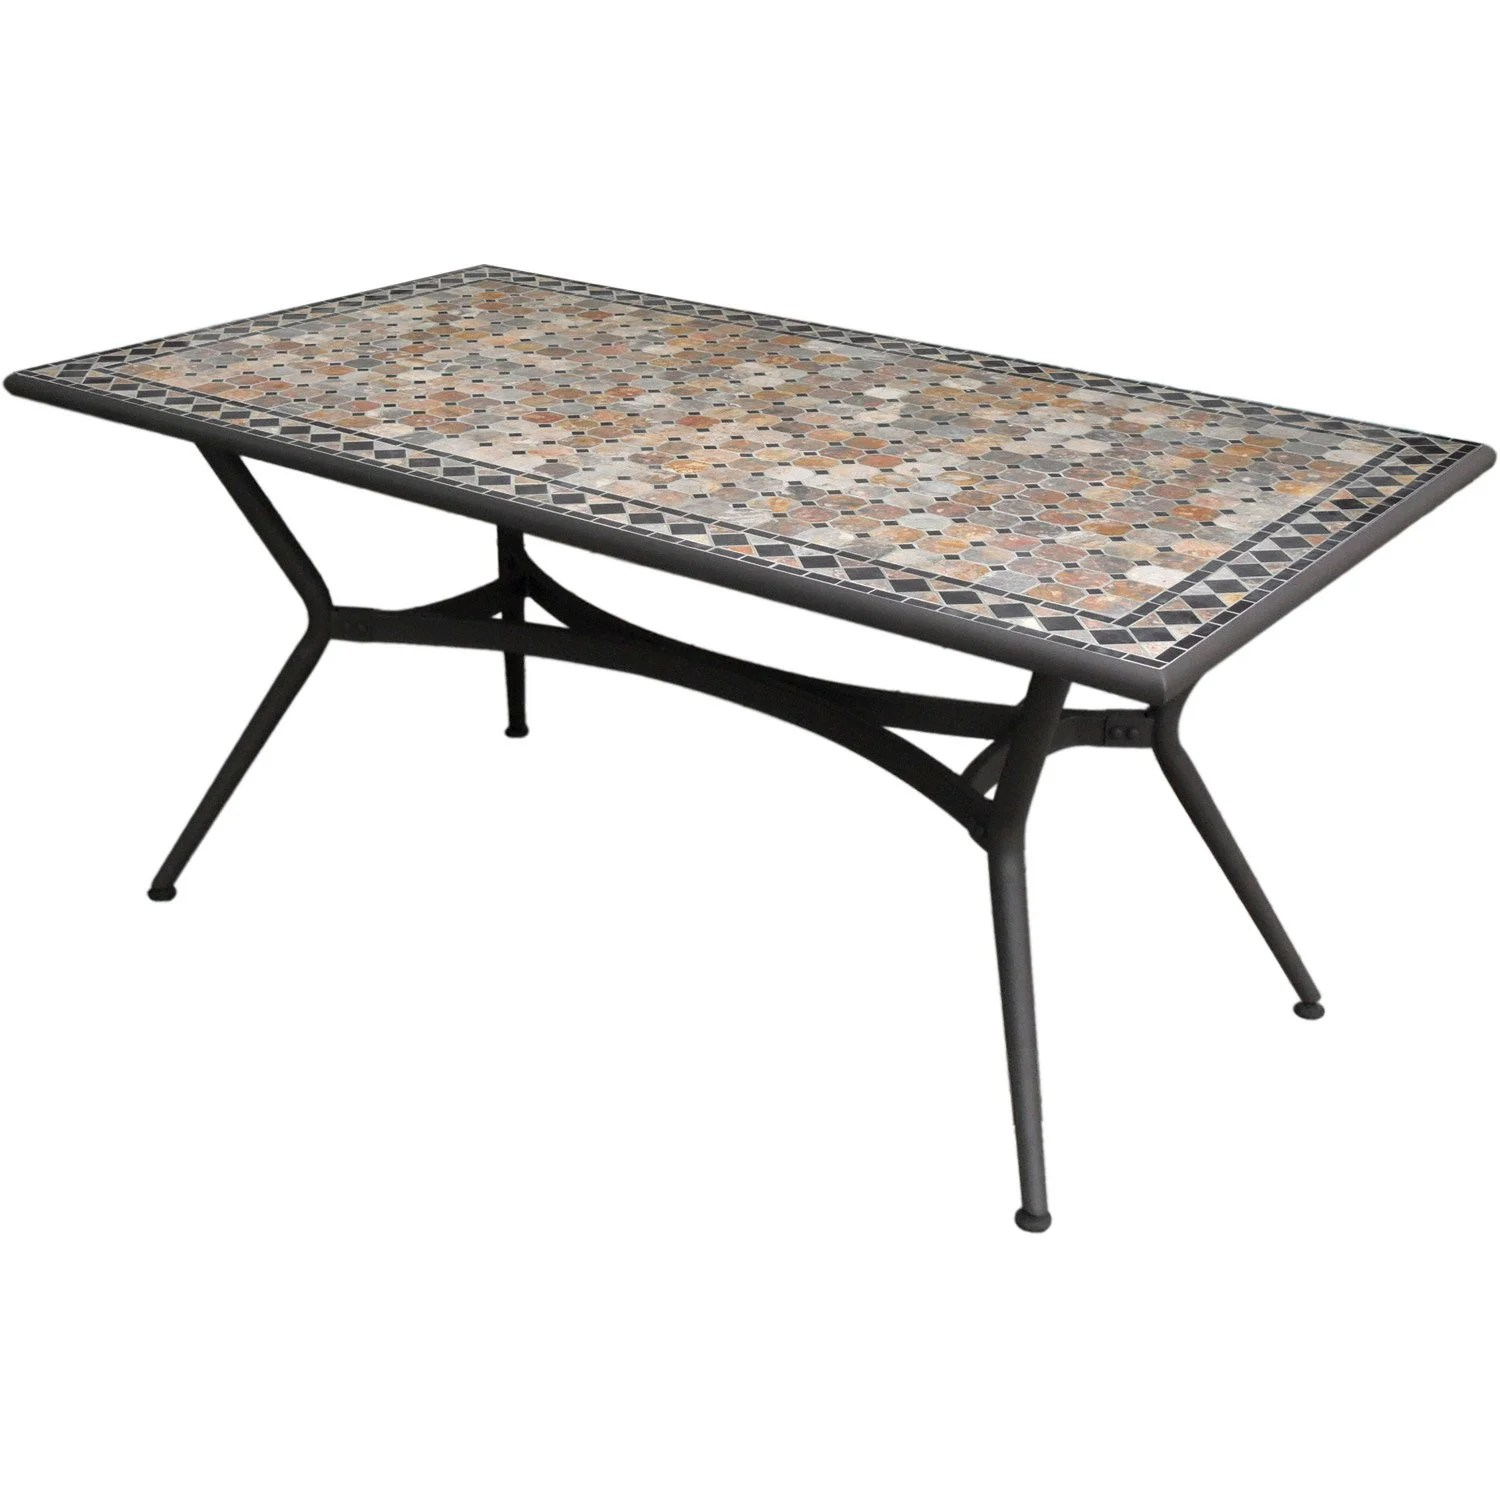 Table de jardin Marocco rectangulaire anthracite 6 personnes  Leroy Merlin